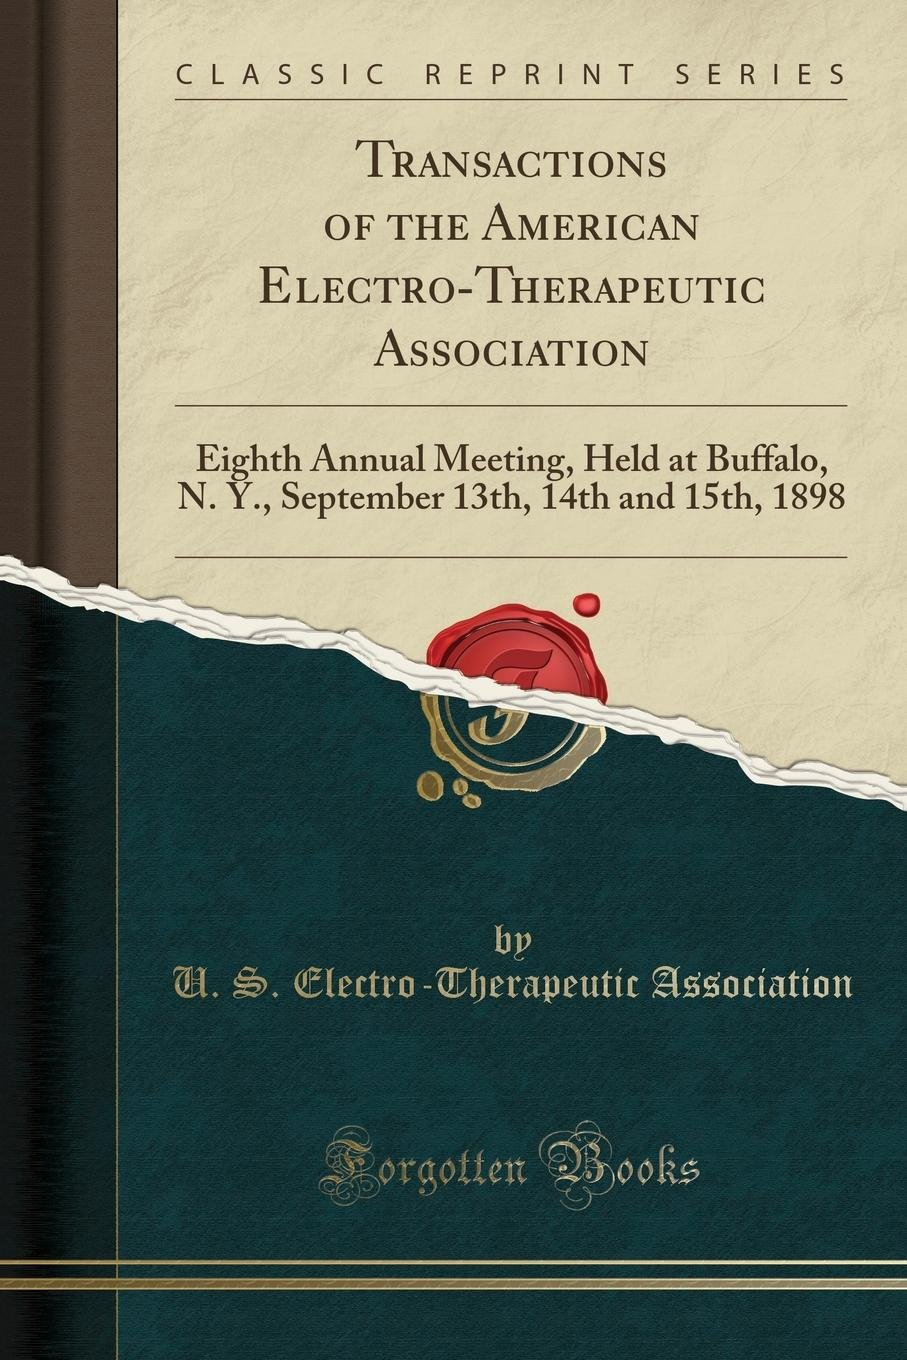 Download Transactions of the American Electro-Therapeutic Association: Eighth Annual Meeting, Held at Buffalo, N. Y., September 13th, 14th and 15th, 1898 (Classic Reprint) pdf